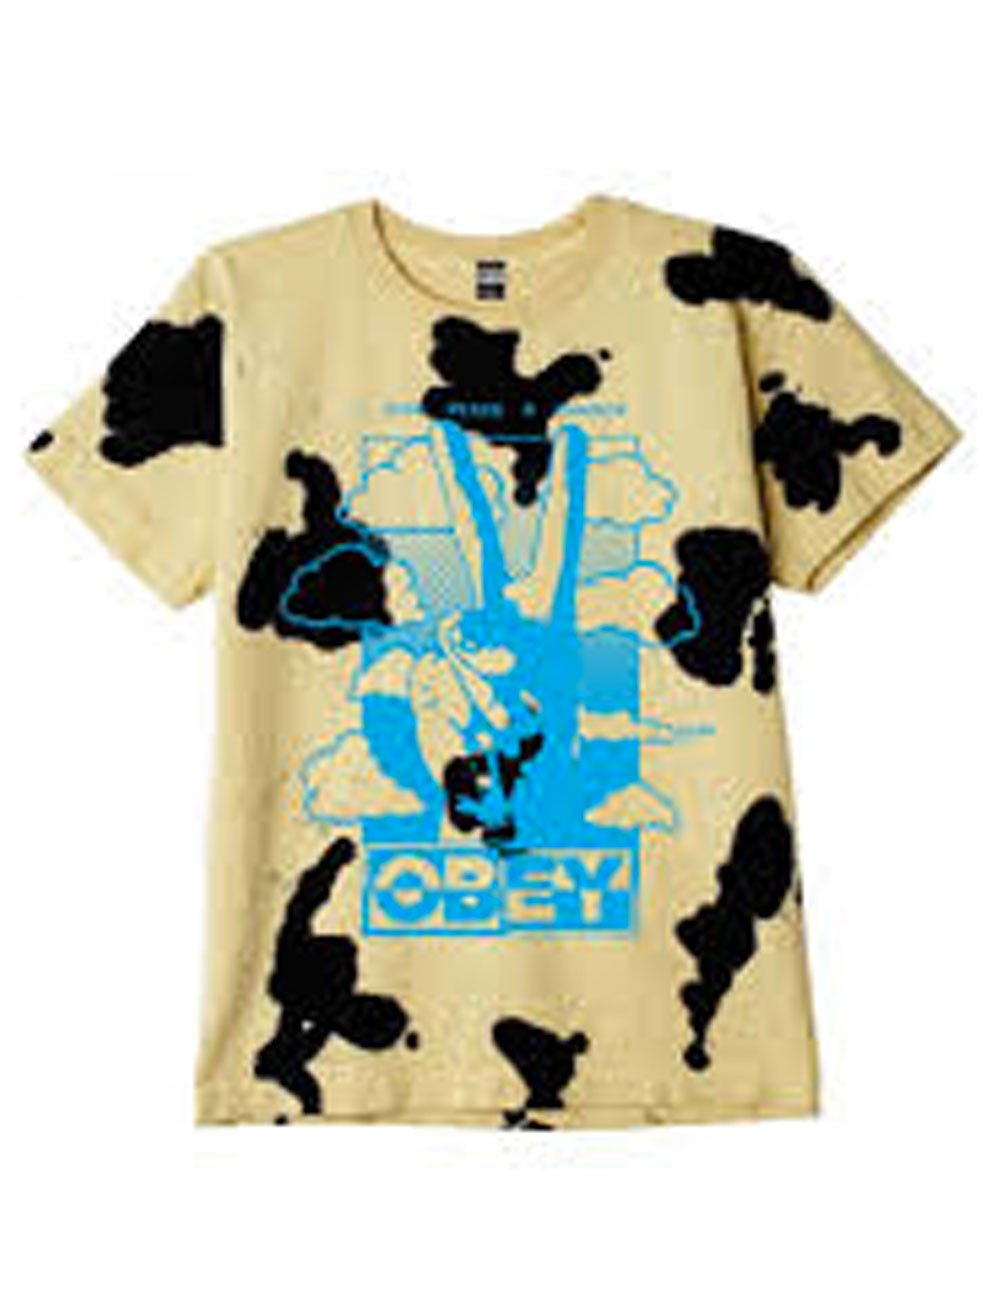 Obey Give peace a chance heavyweight tie dye tee 163102190